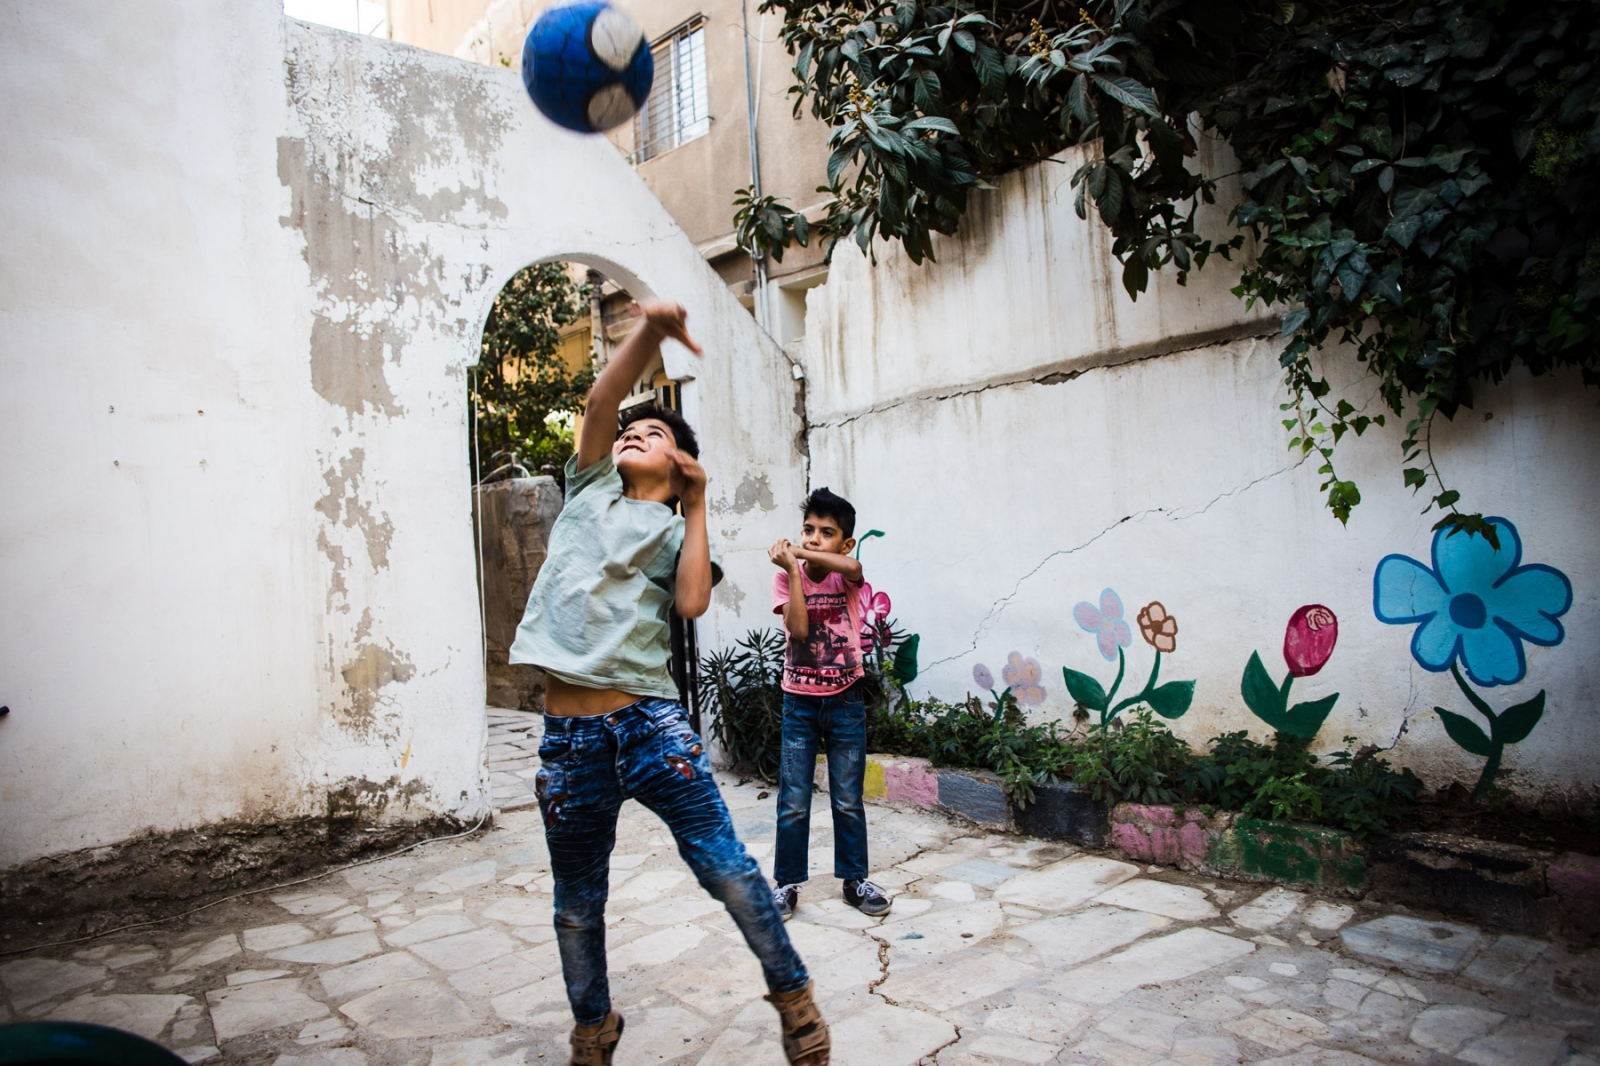 Iraqi and Syrian children play together at Collateral Repair Project's community center in Amman, Jordan.